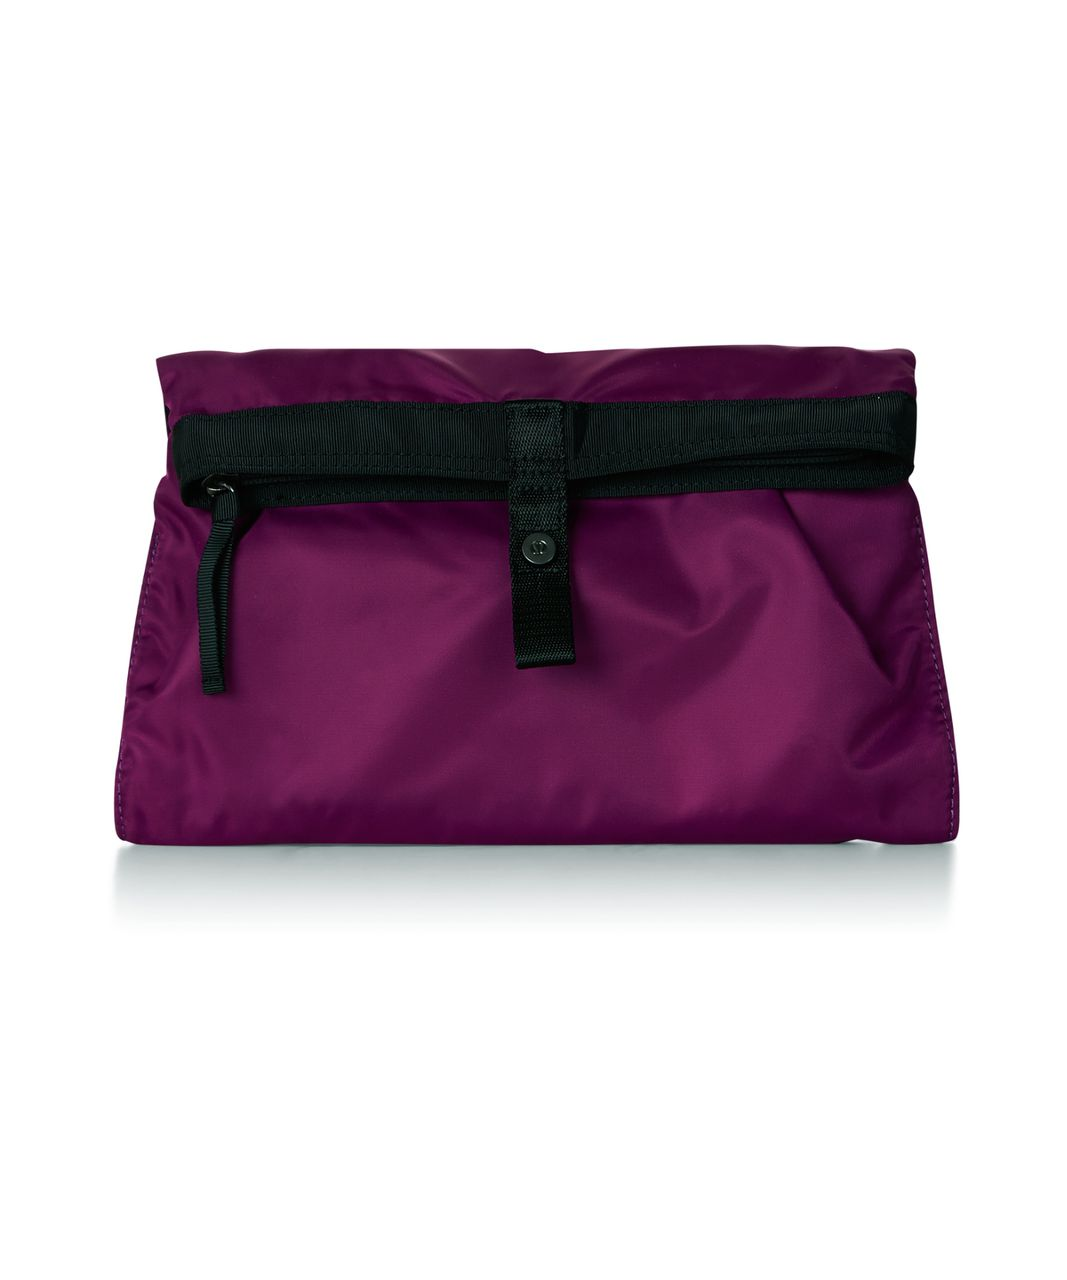 Lululemon Sweaty Or Not Kit - Regal Plum